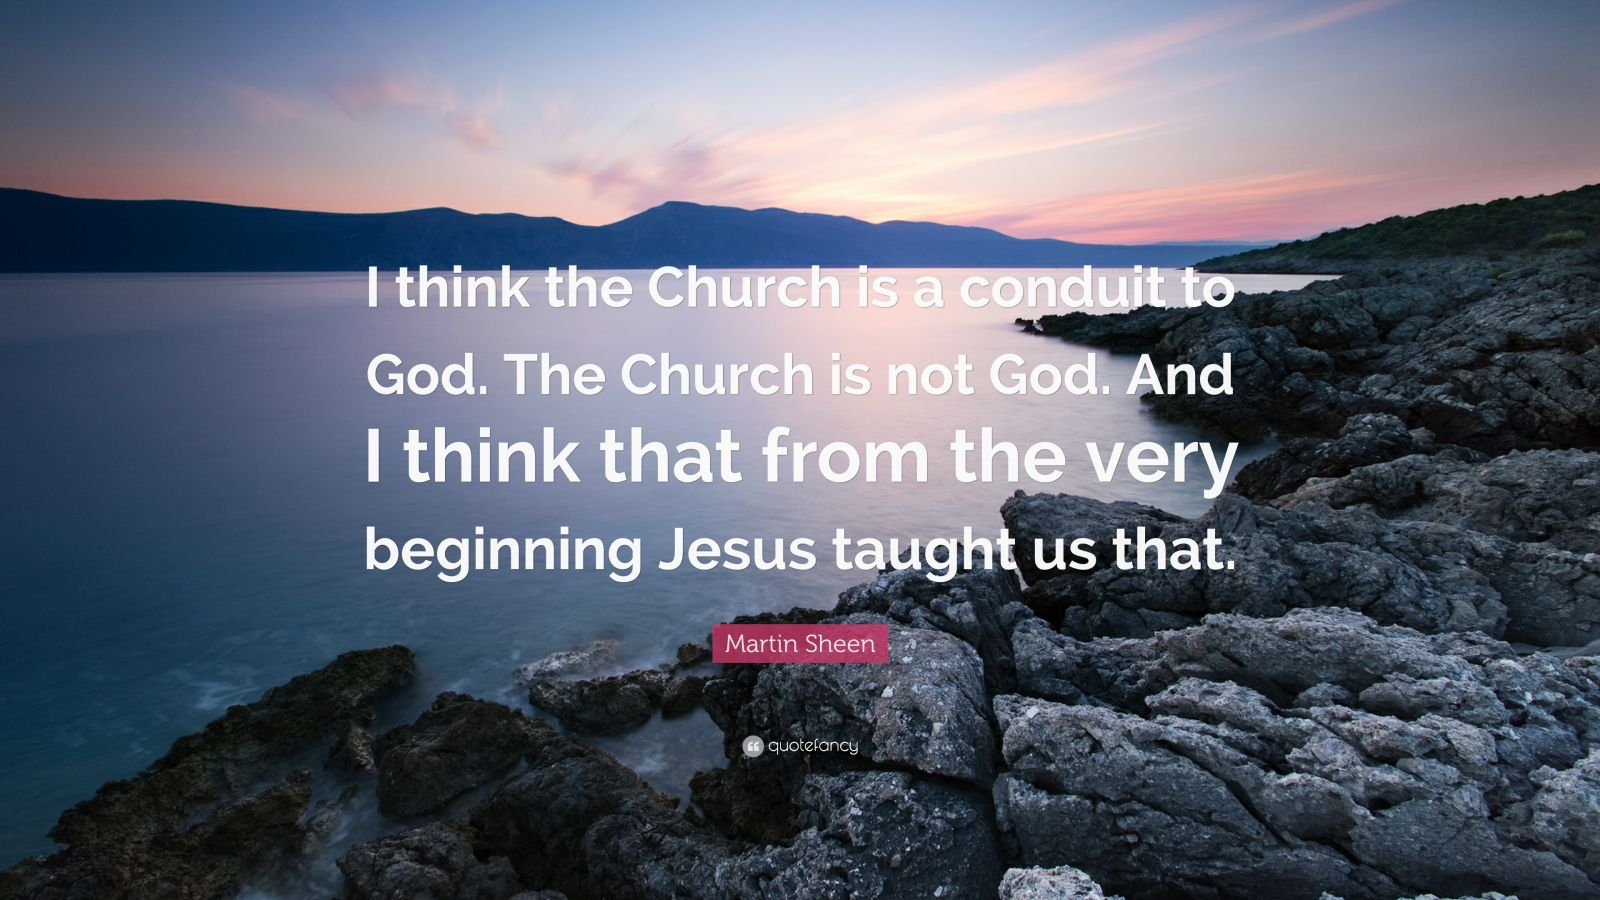 """Martin Sheen Quote: """"I think the Church is a conduit to God. The Church is not God. And I think that from the very beginning Jesus taught us that."""""""